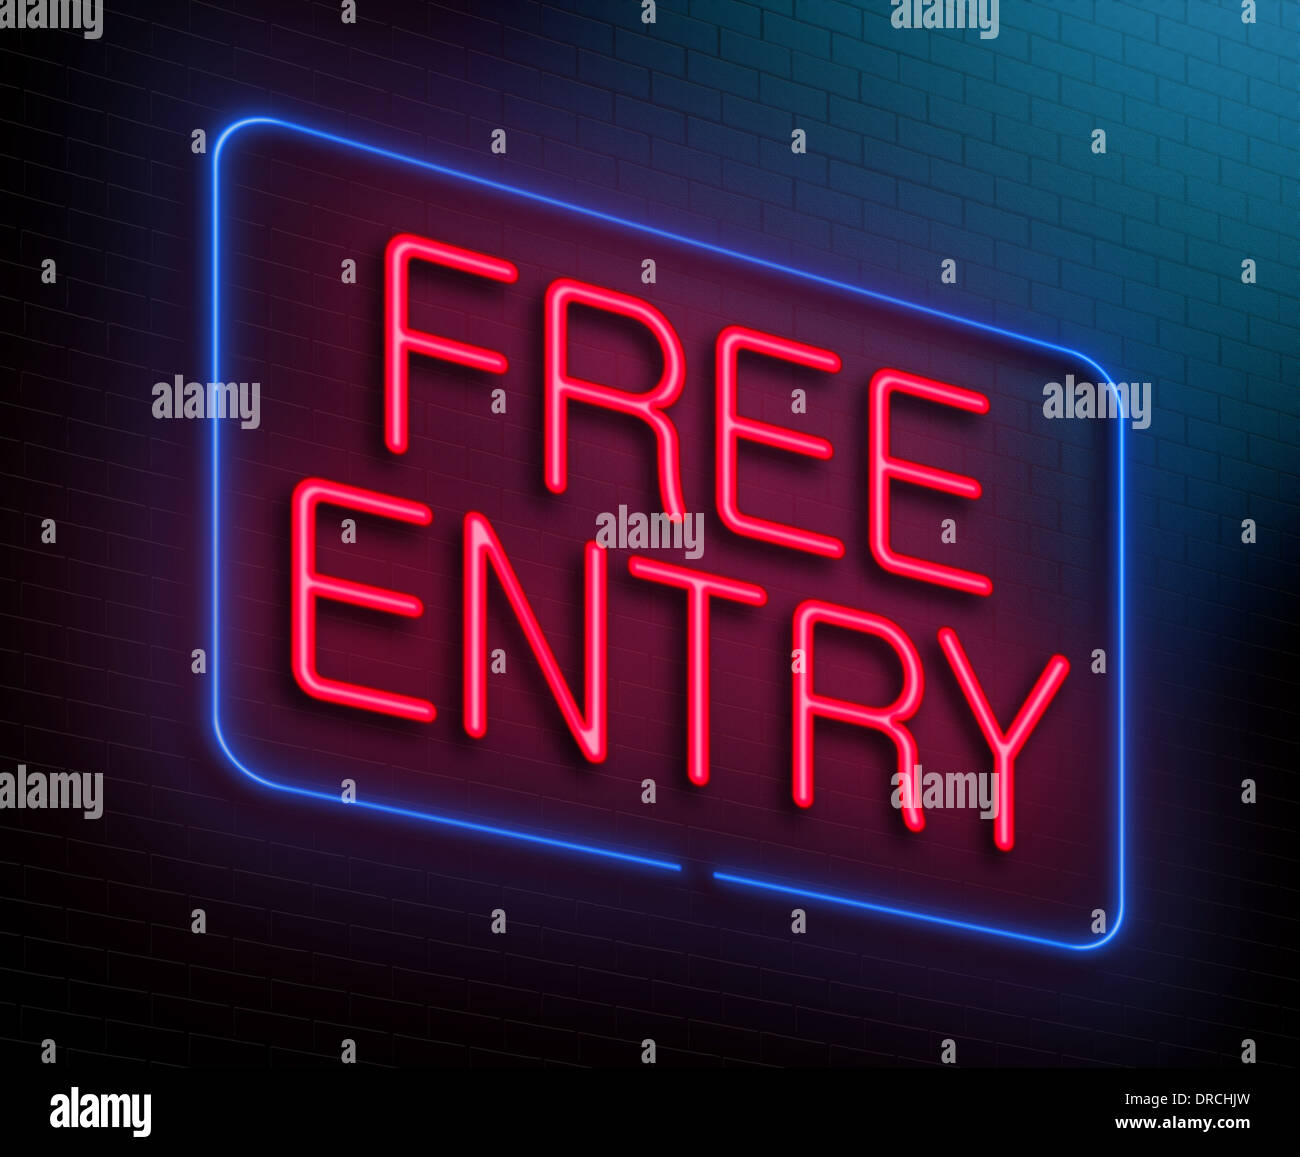 Free entry concept. - Stock Image